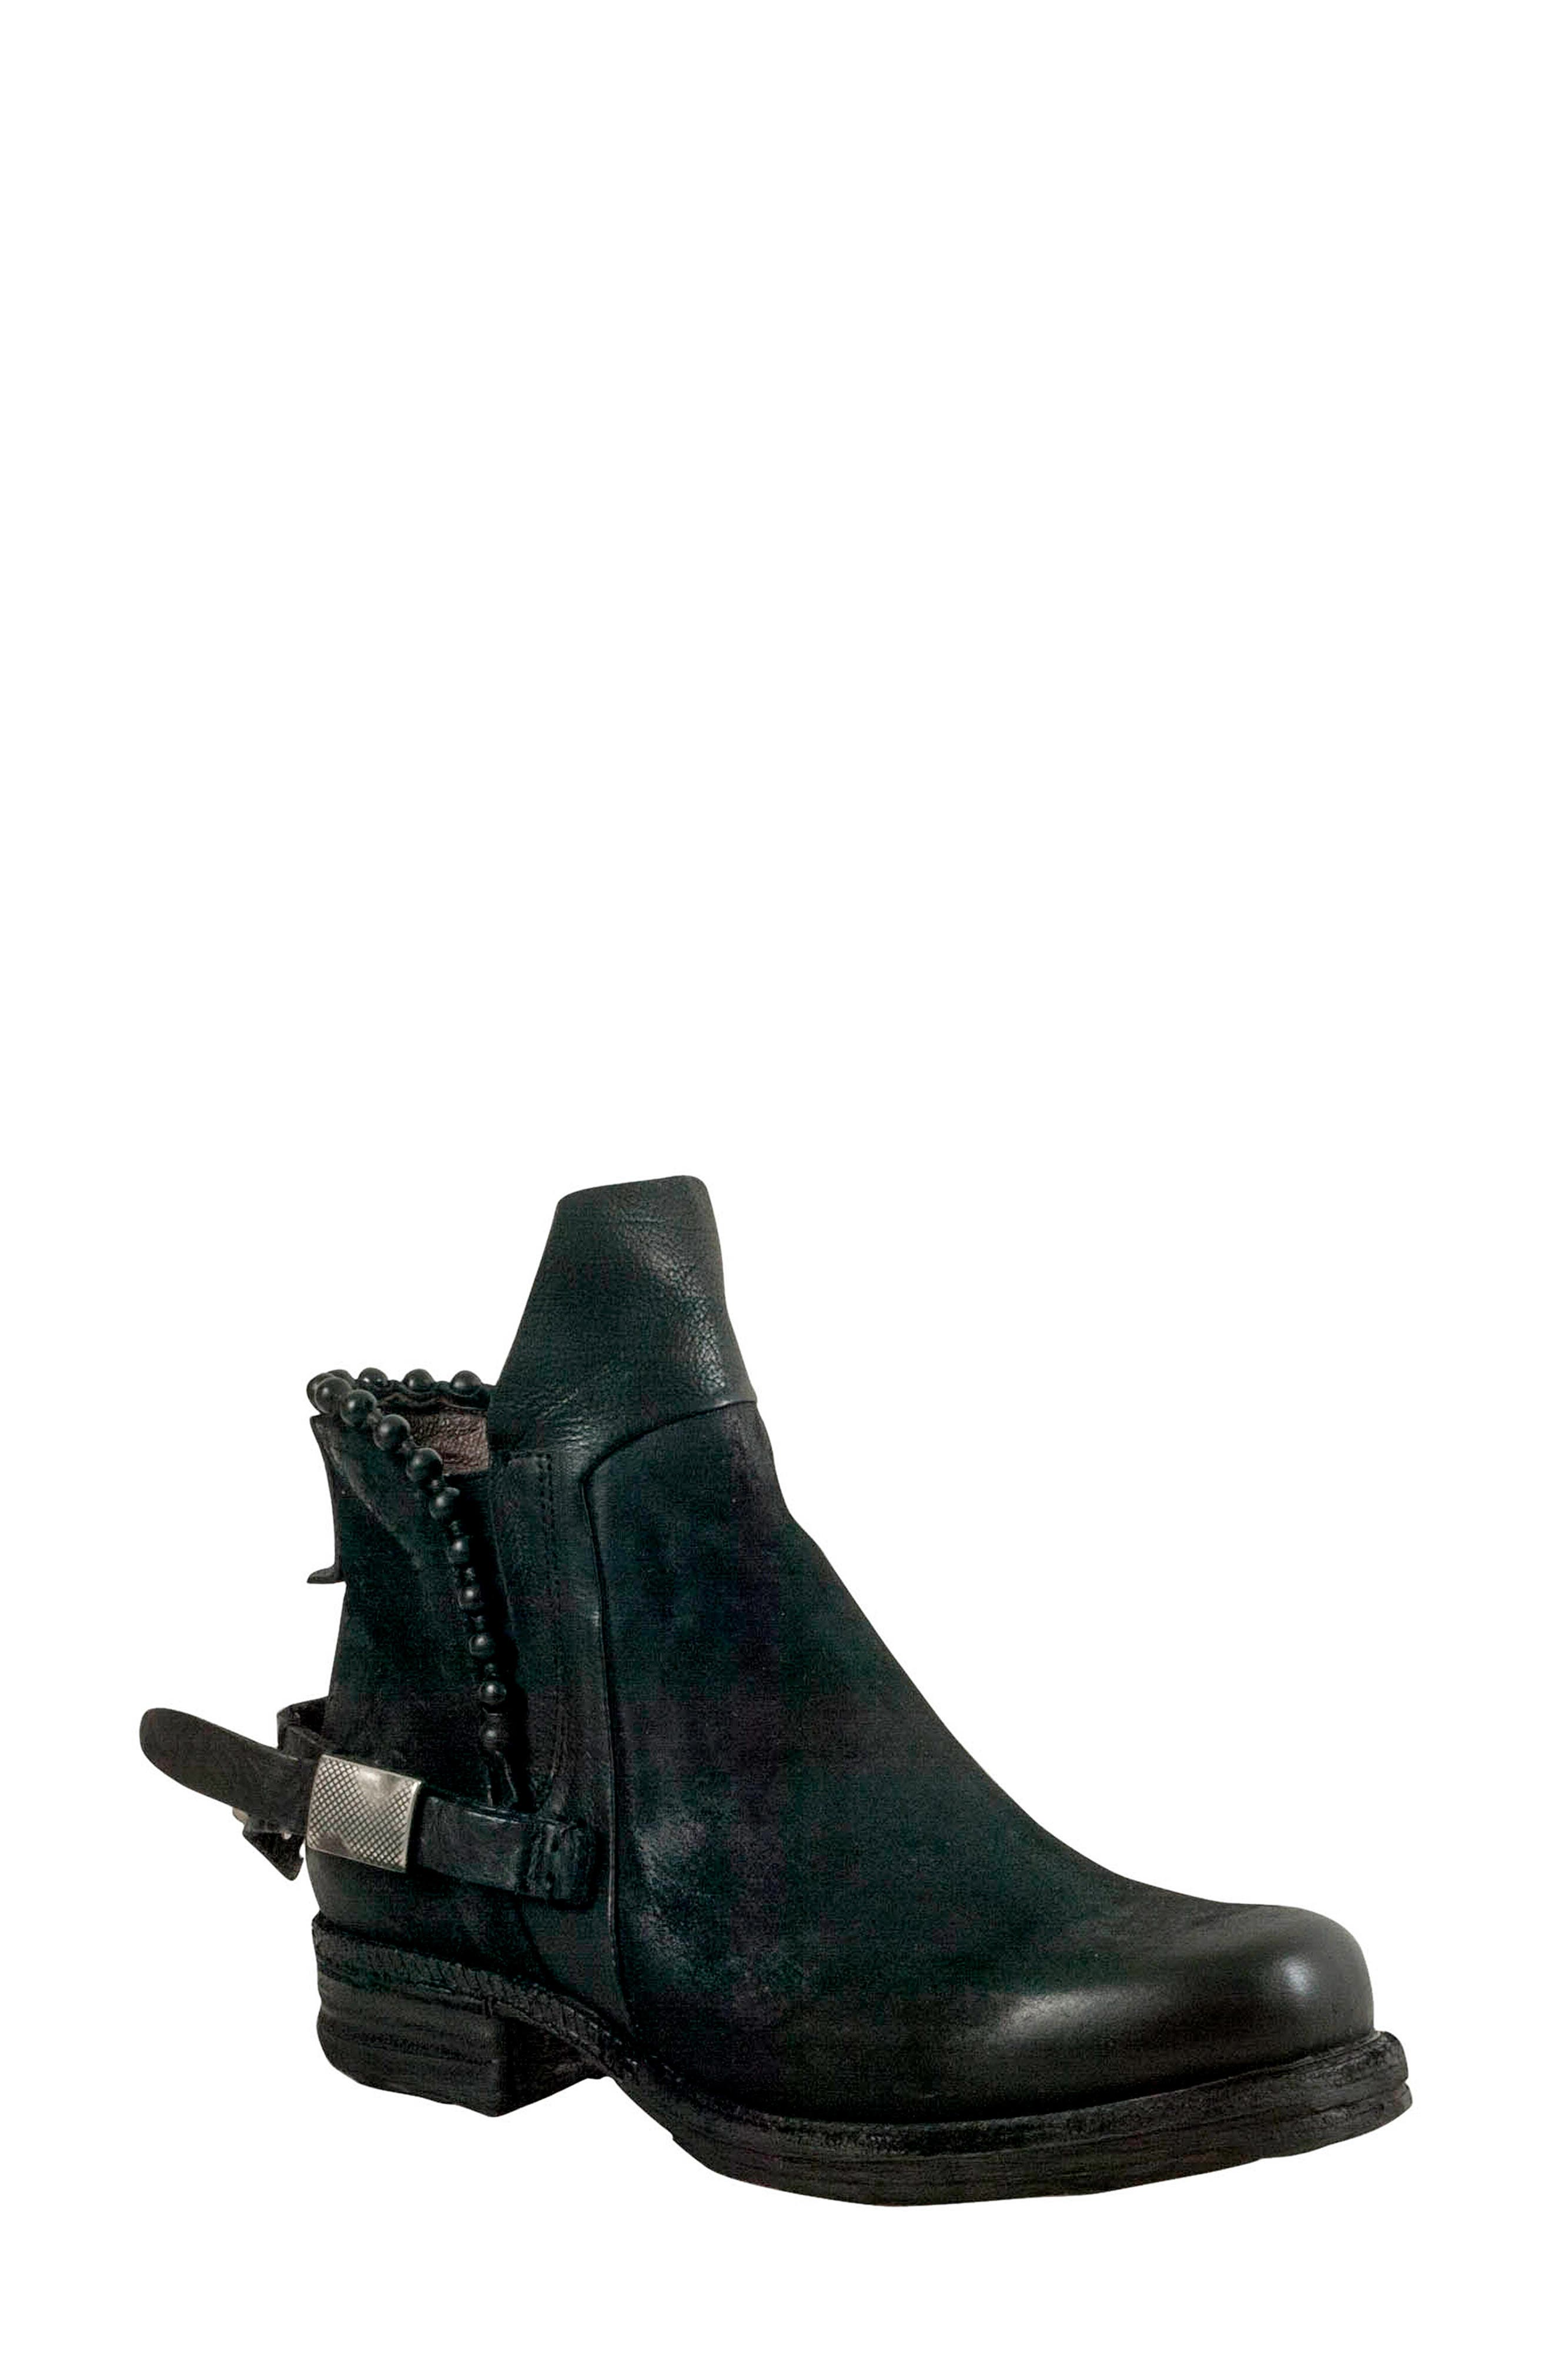 A.S.98 Slade Bootie in Black